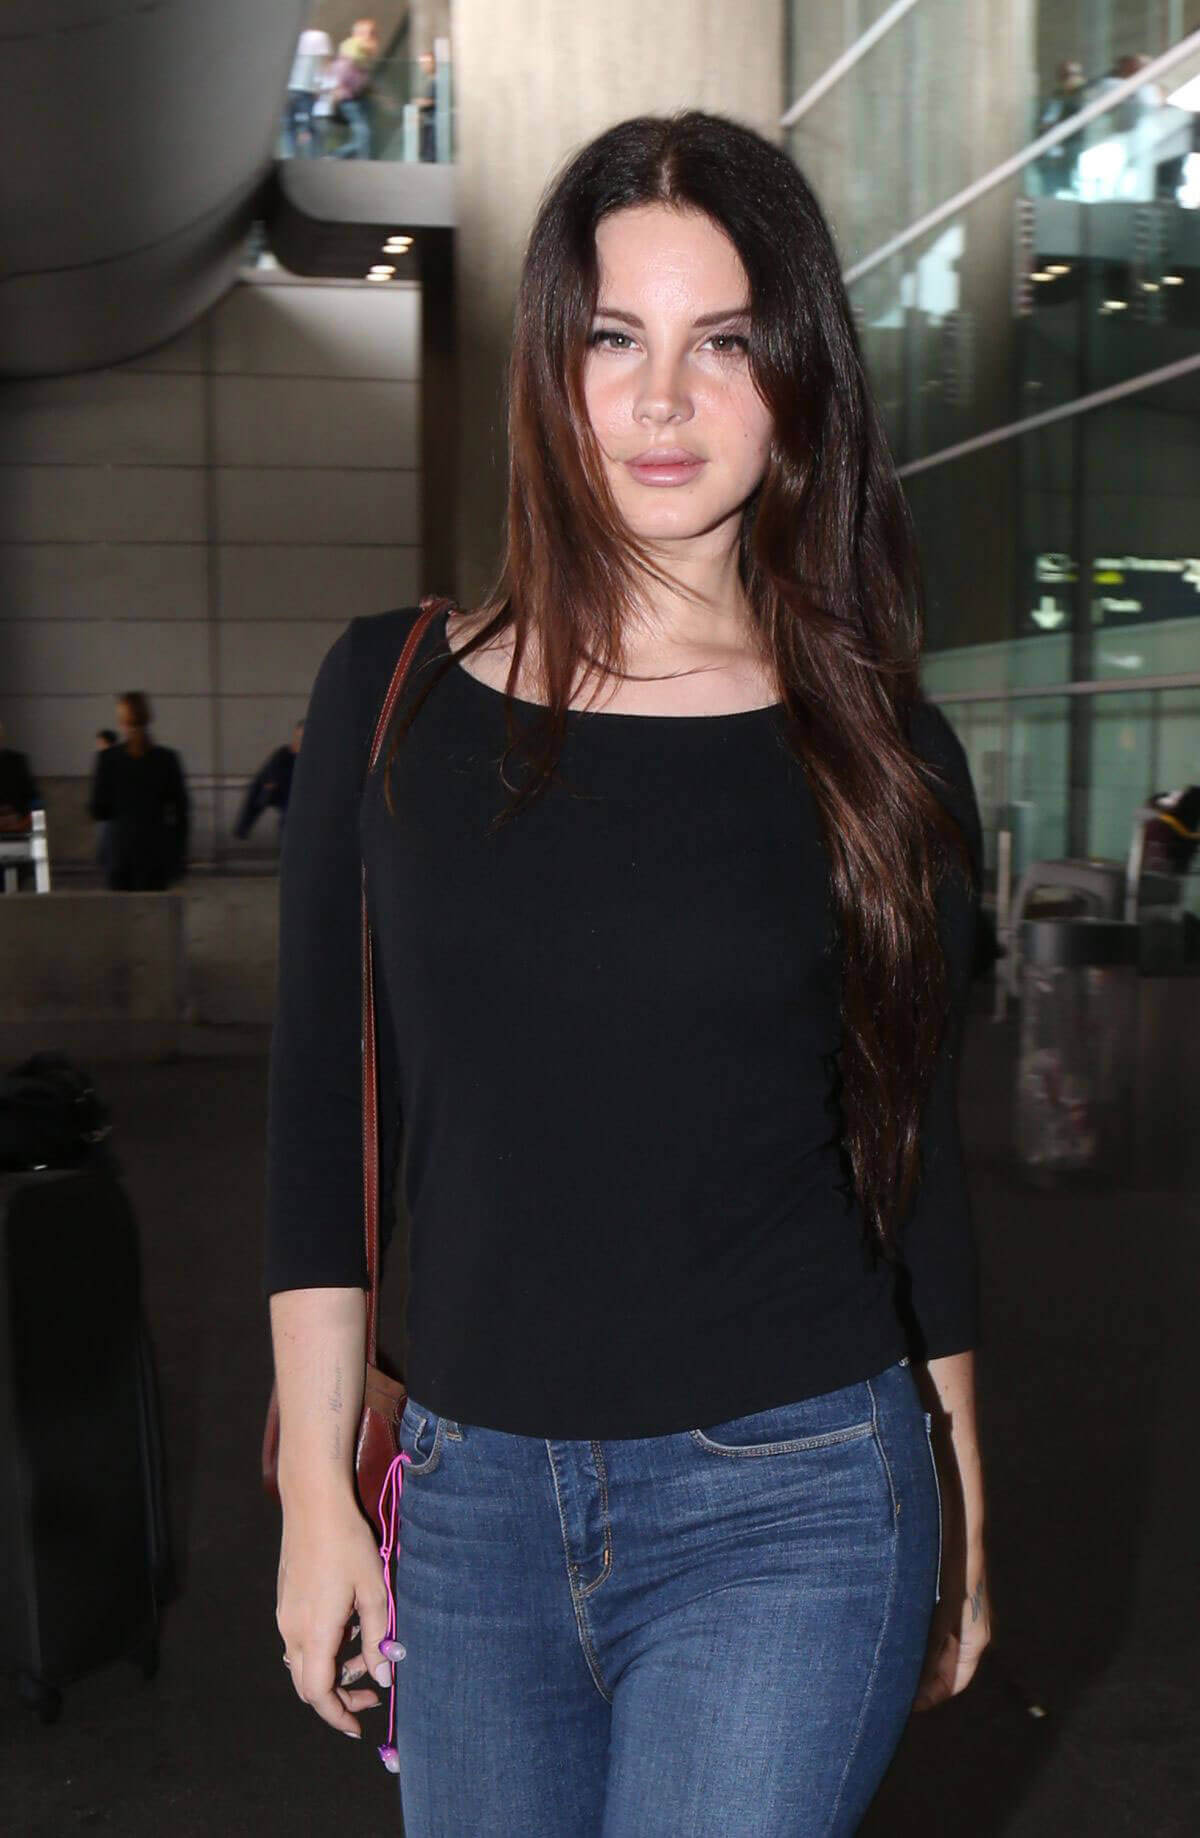 Lana Del Rey Stills at Charles De Gaulle Airport in Paris Images - 07/22/2017